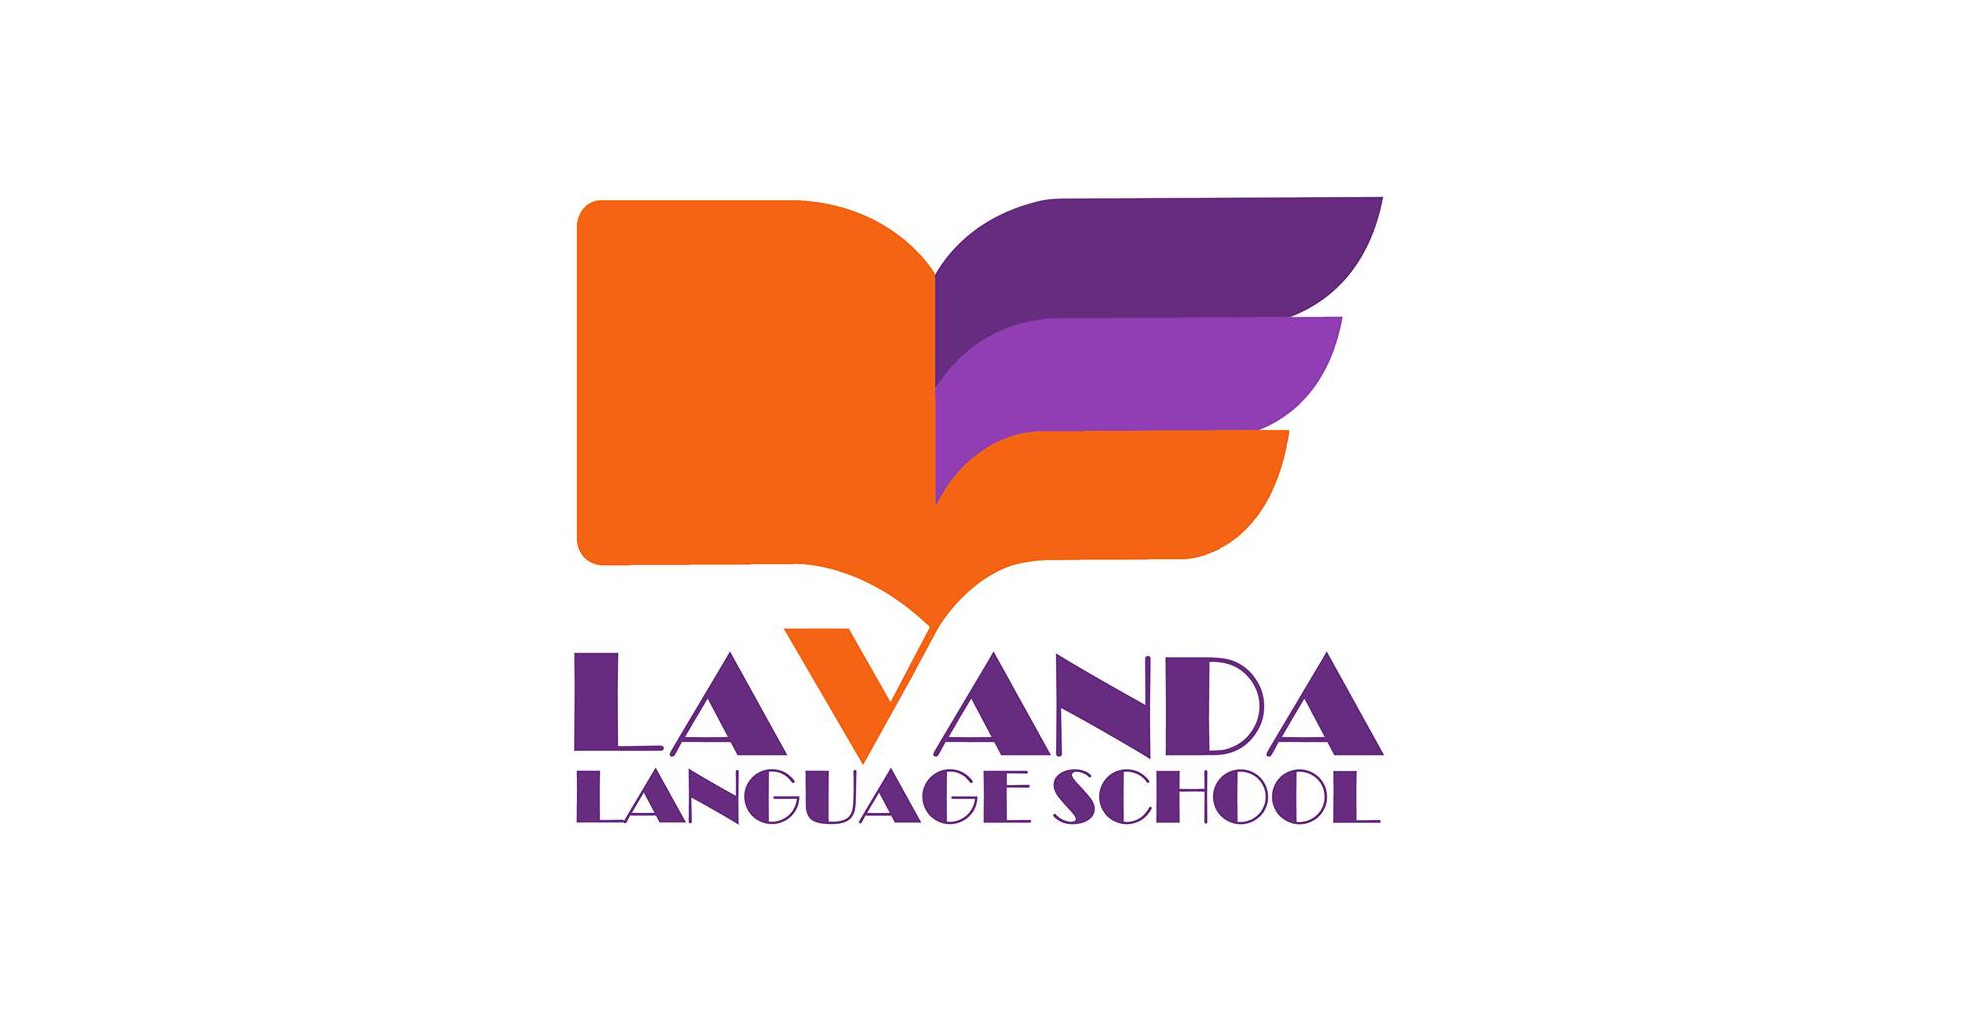 Lavanda Language School